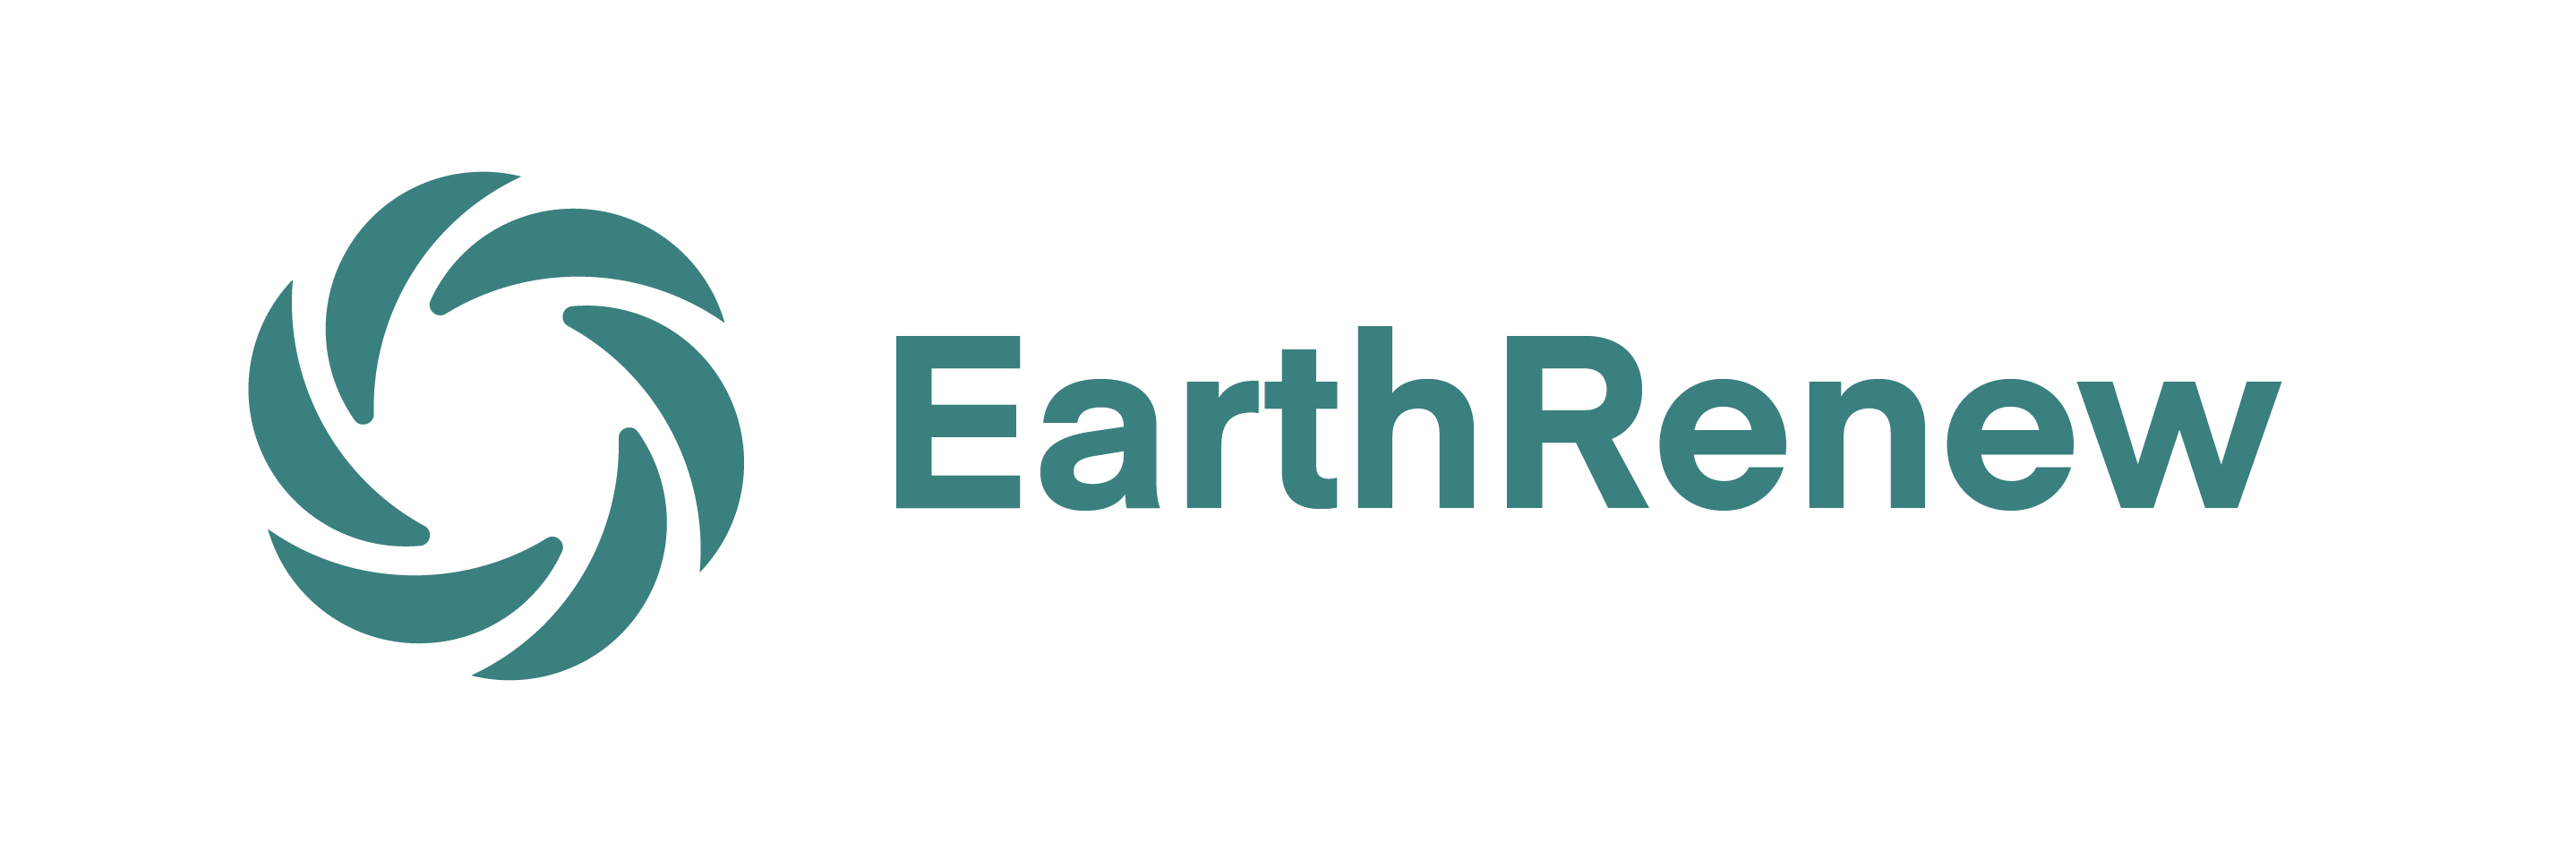 REPEAT -- EarthRenew Announces Sale of Product to an Alberta Leader in Wellsite Reclamation and Appointment of Key Management